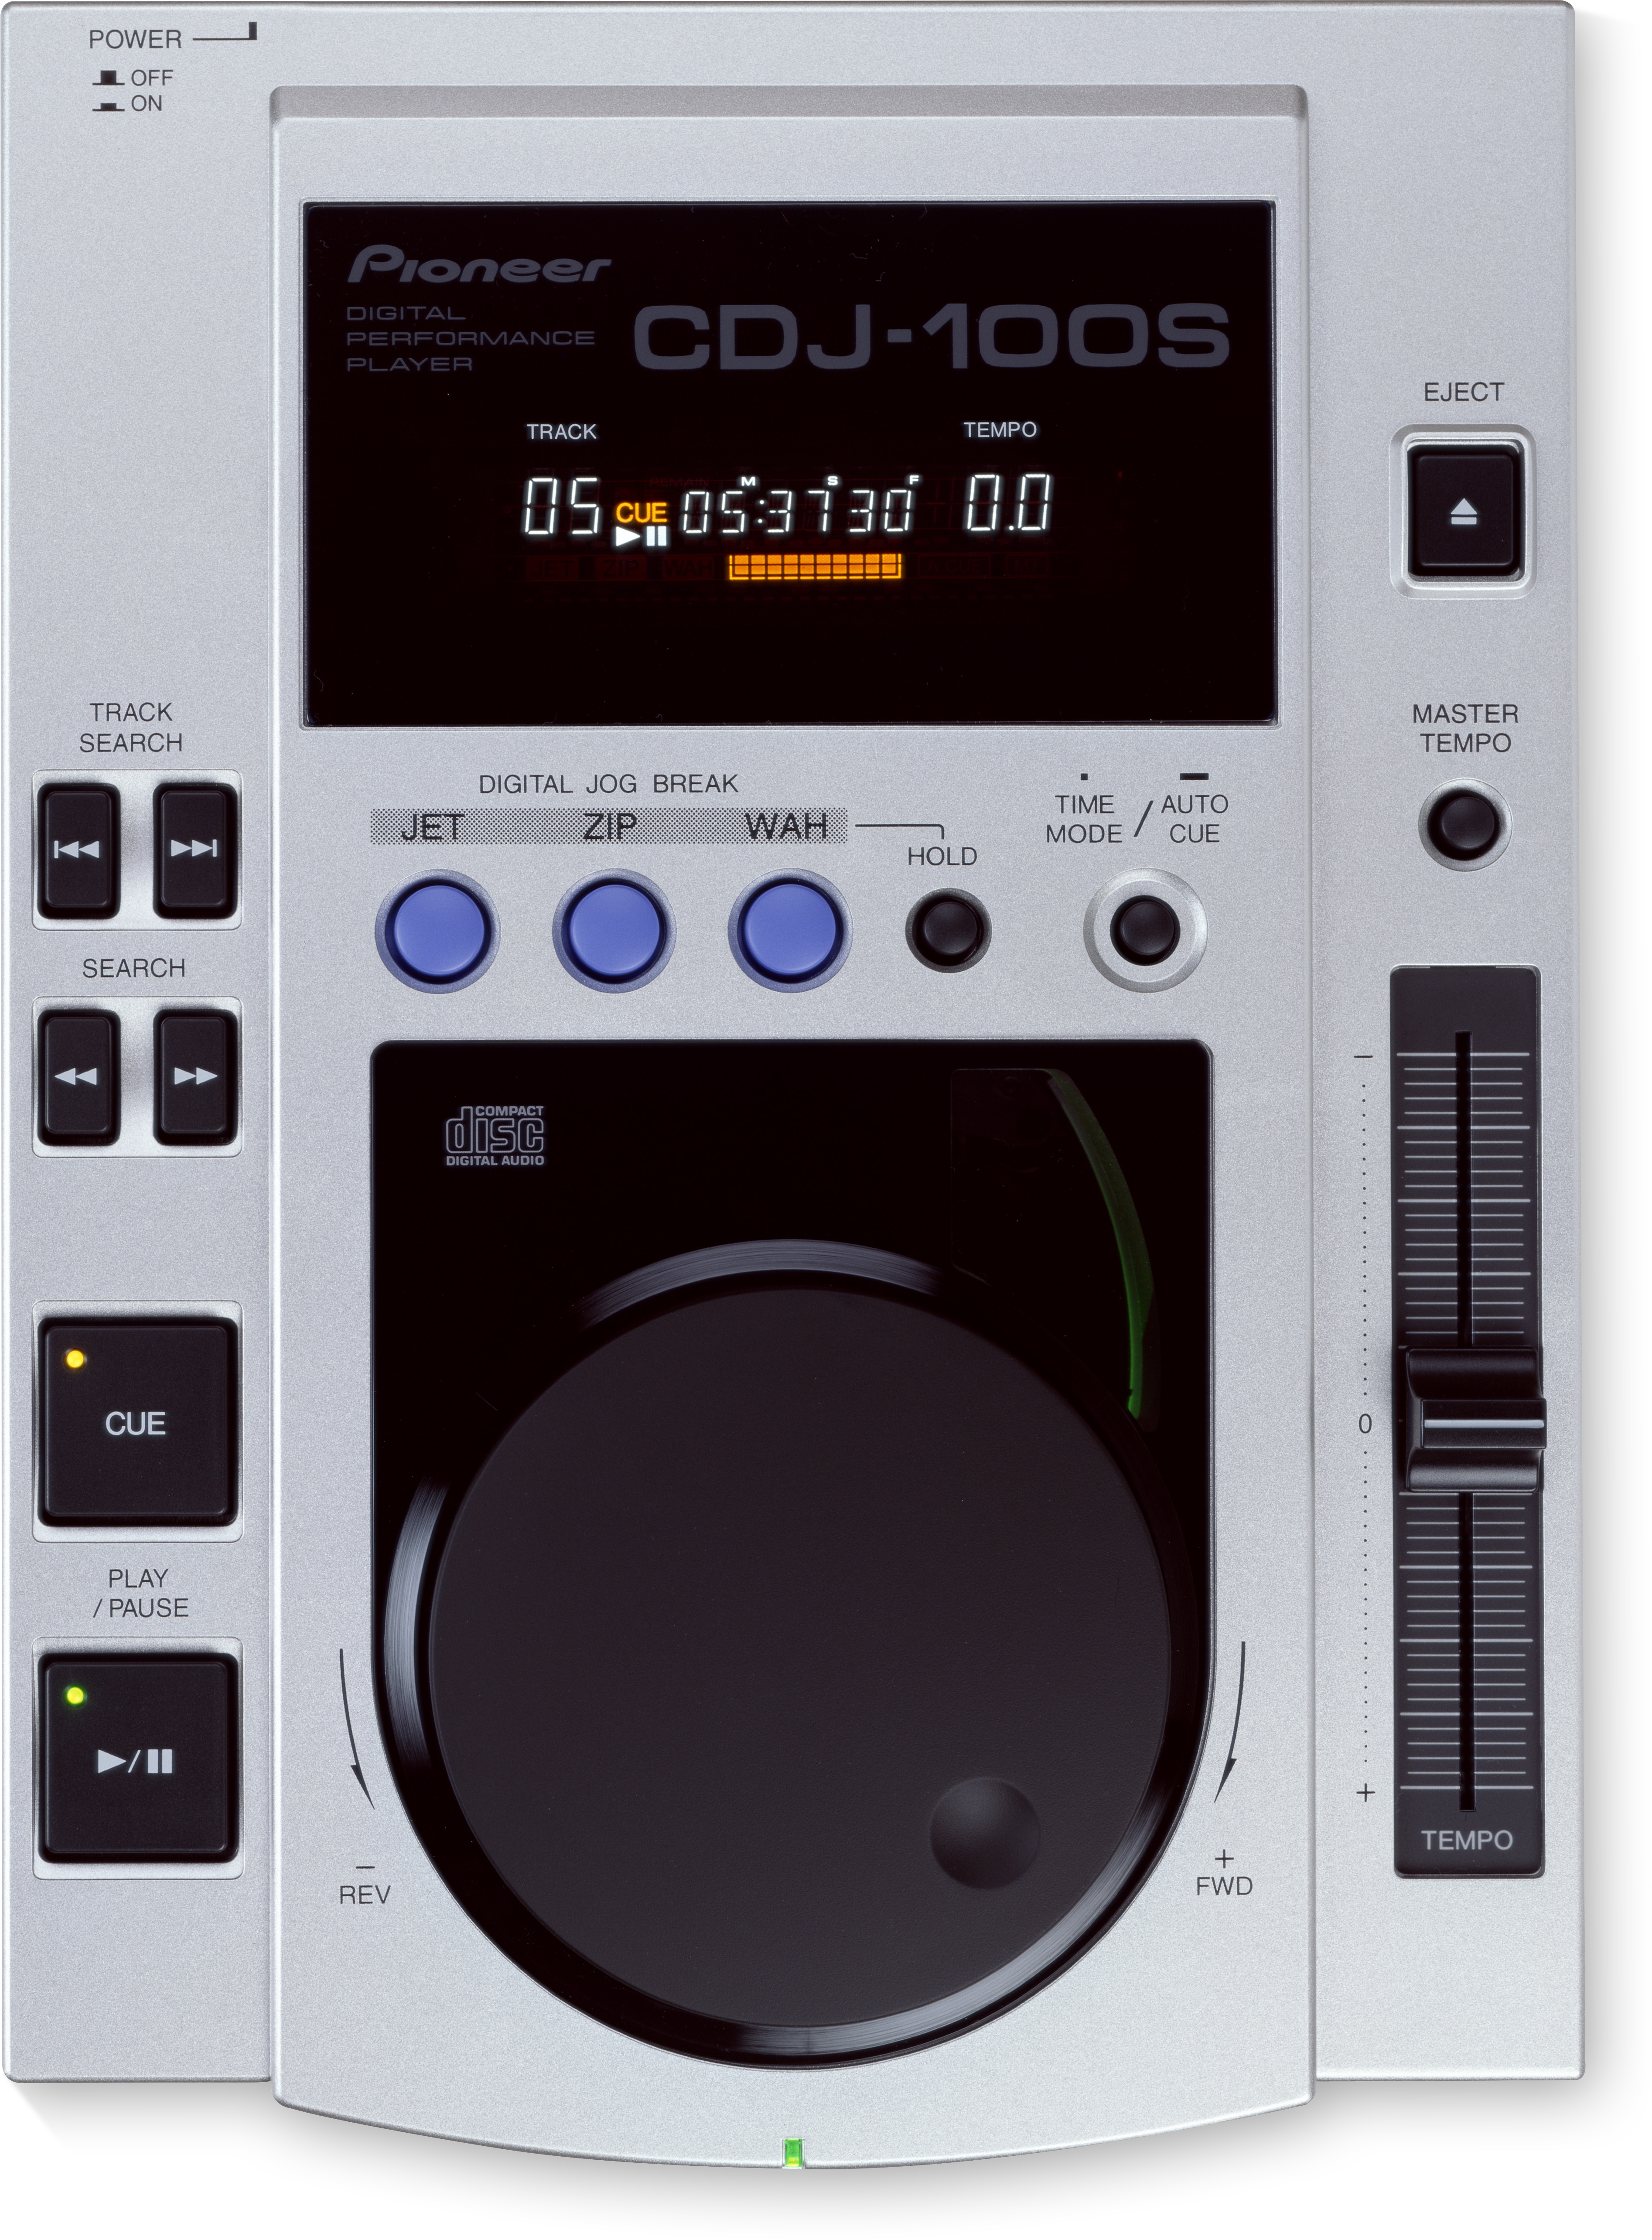 CAN I PLAY A SONG ON MY DJ CONTROLLER AND A DIFFERENT ONE ON THE SPEAKERS